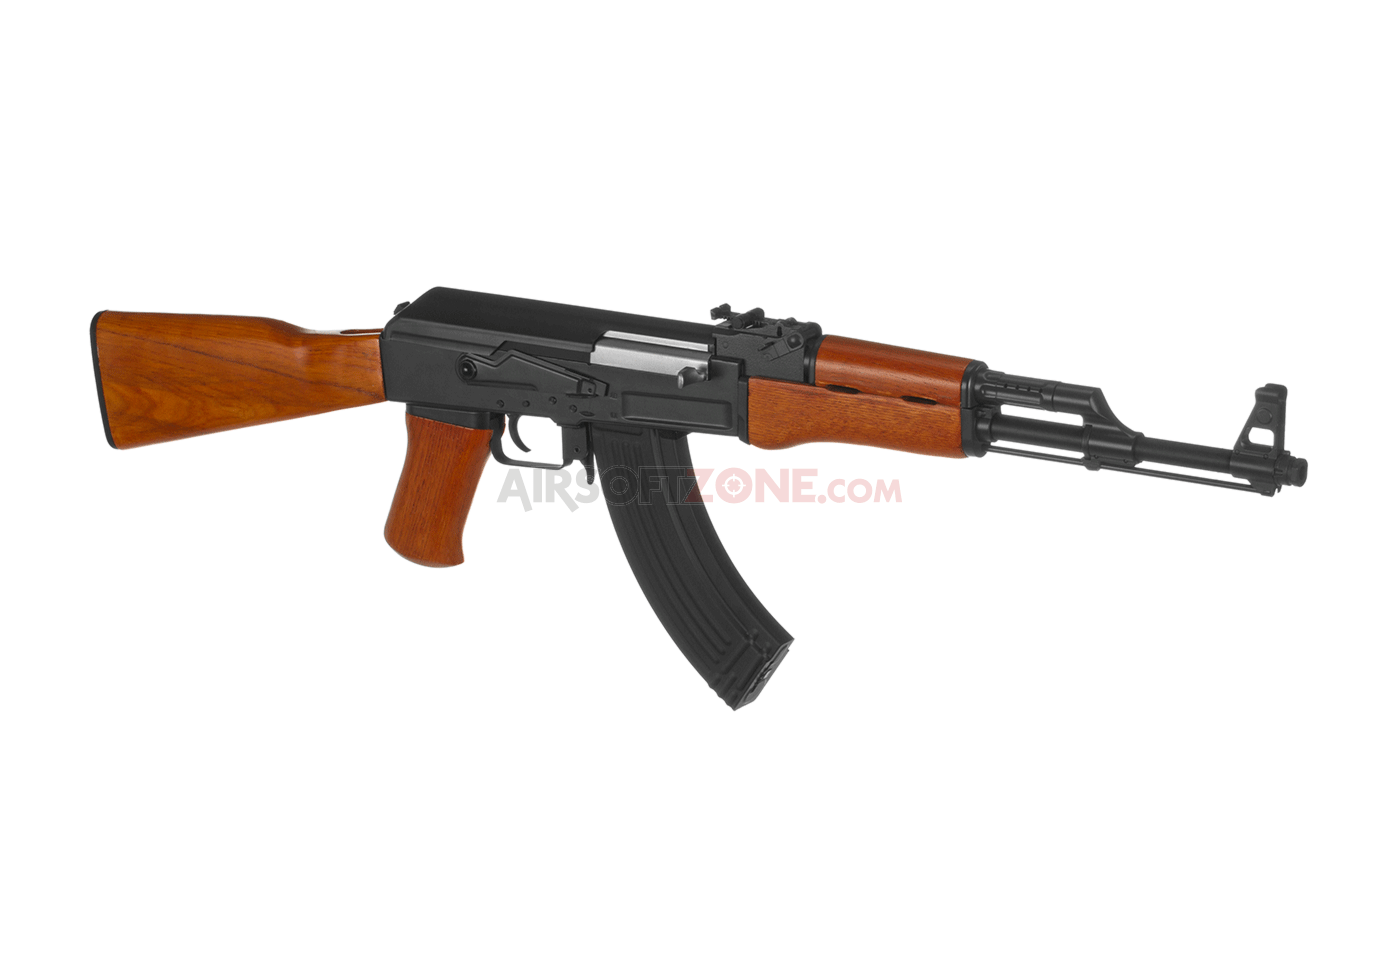 ak47 full metal cyma aeg airsoft aeg rifles online shop. Black Bedroom Furniture Sets. Home Design Ideas